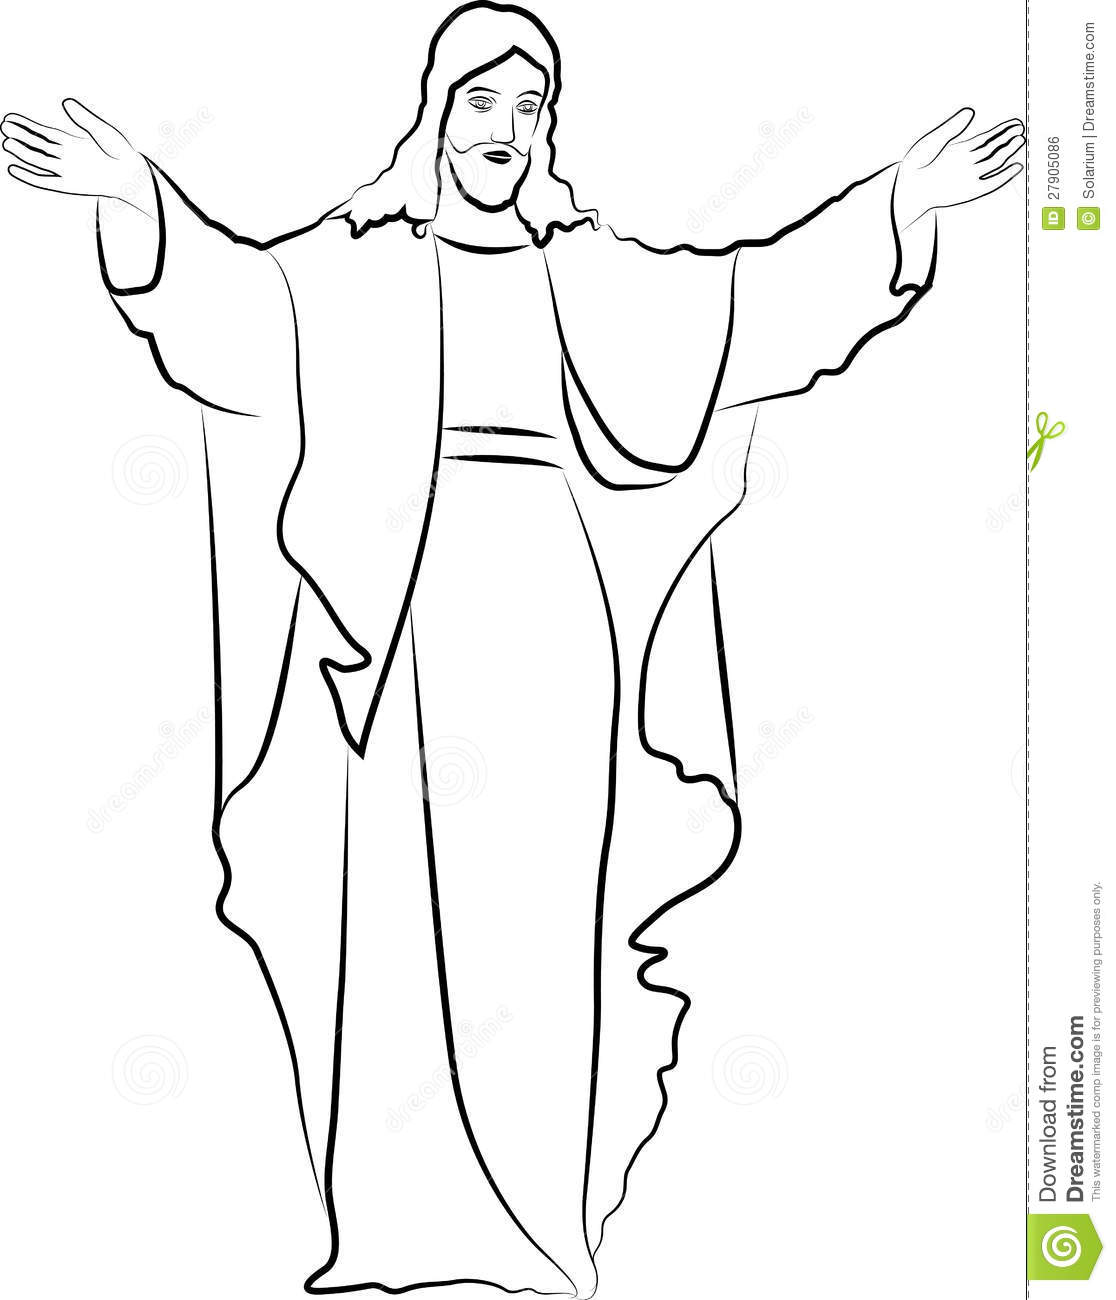 Jesus Christ Stock Vector. Image Of Blessings, Catholic